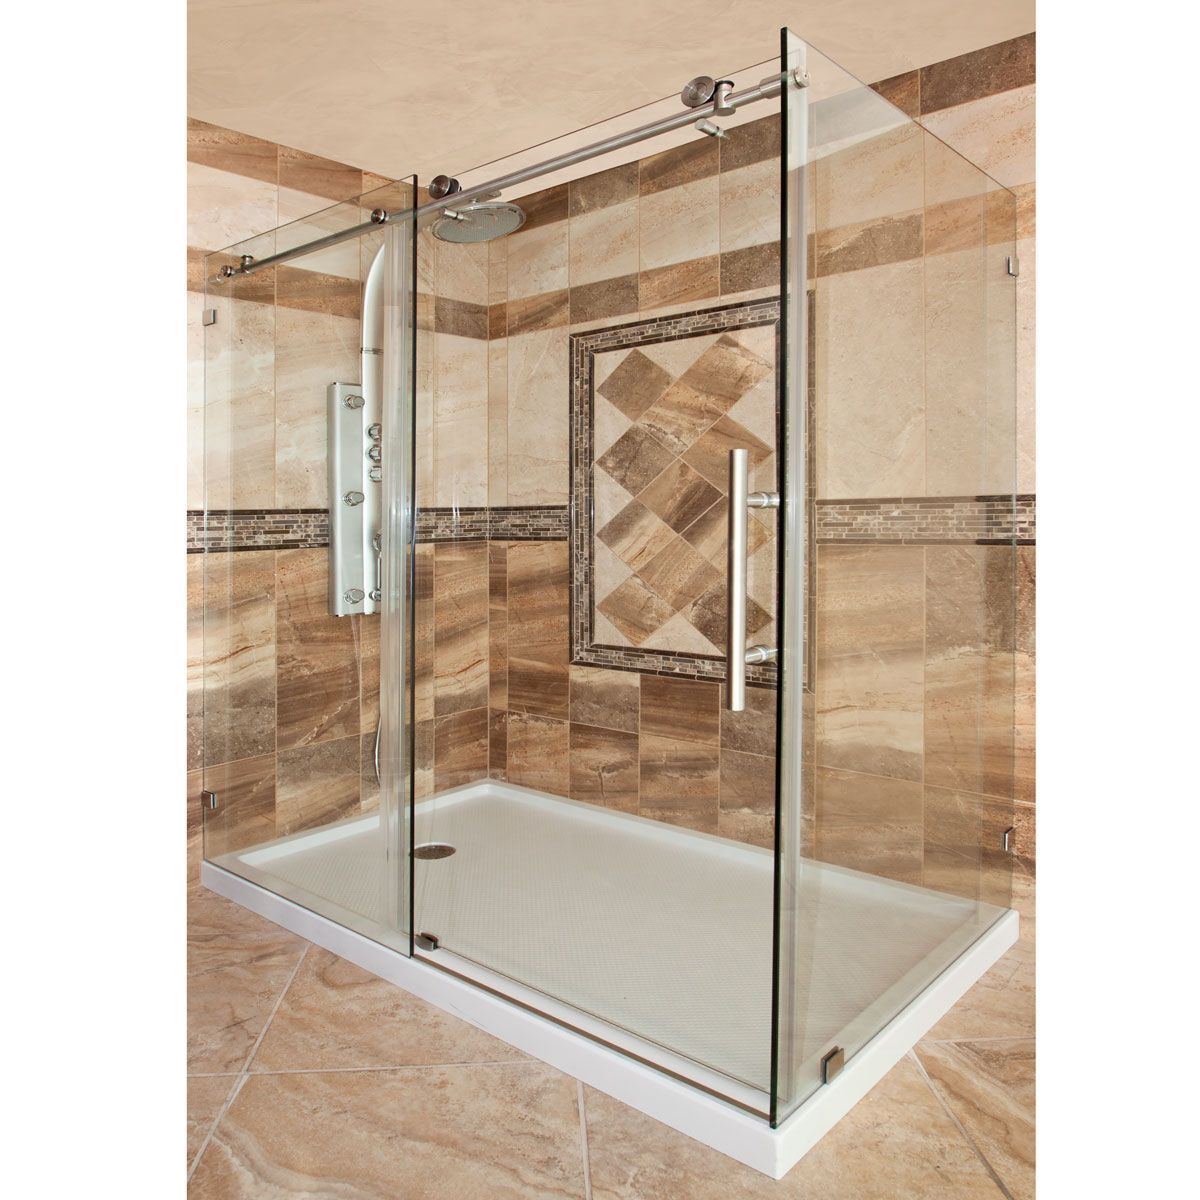 Lesscare Brushed Nickel Ultra C 56 60w X 76h Sliding Shower Door And Enclosure With Stationary Panel